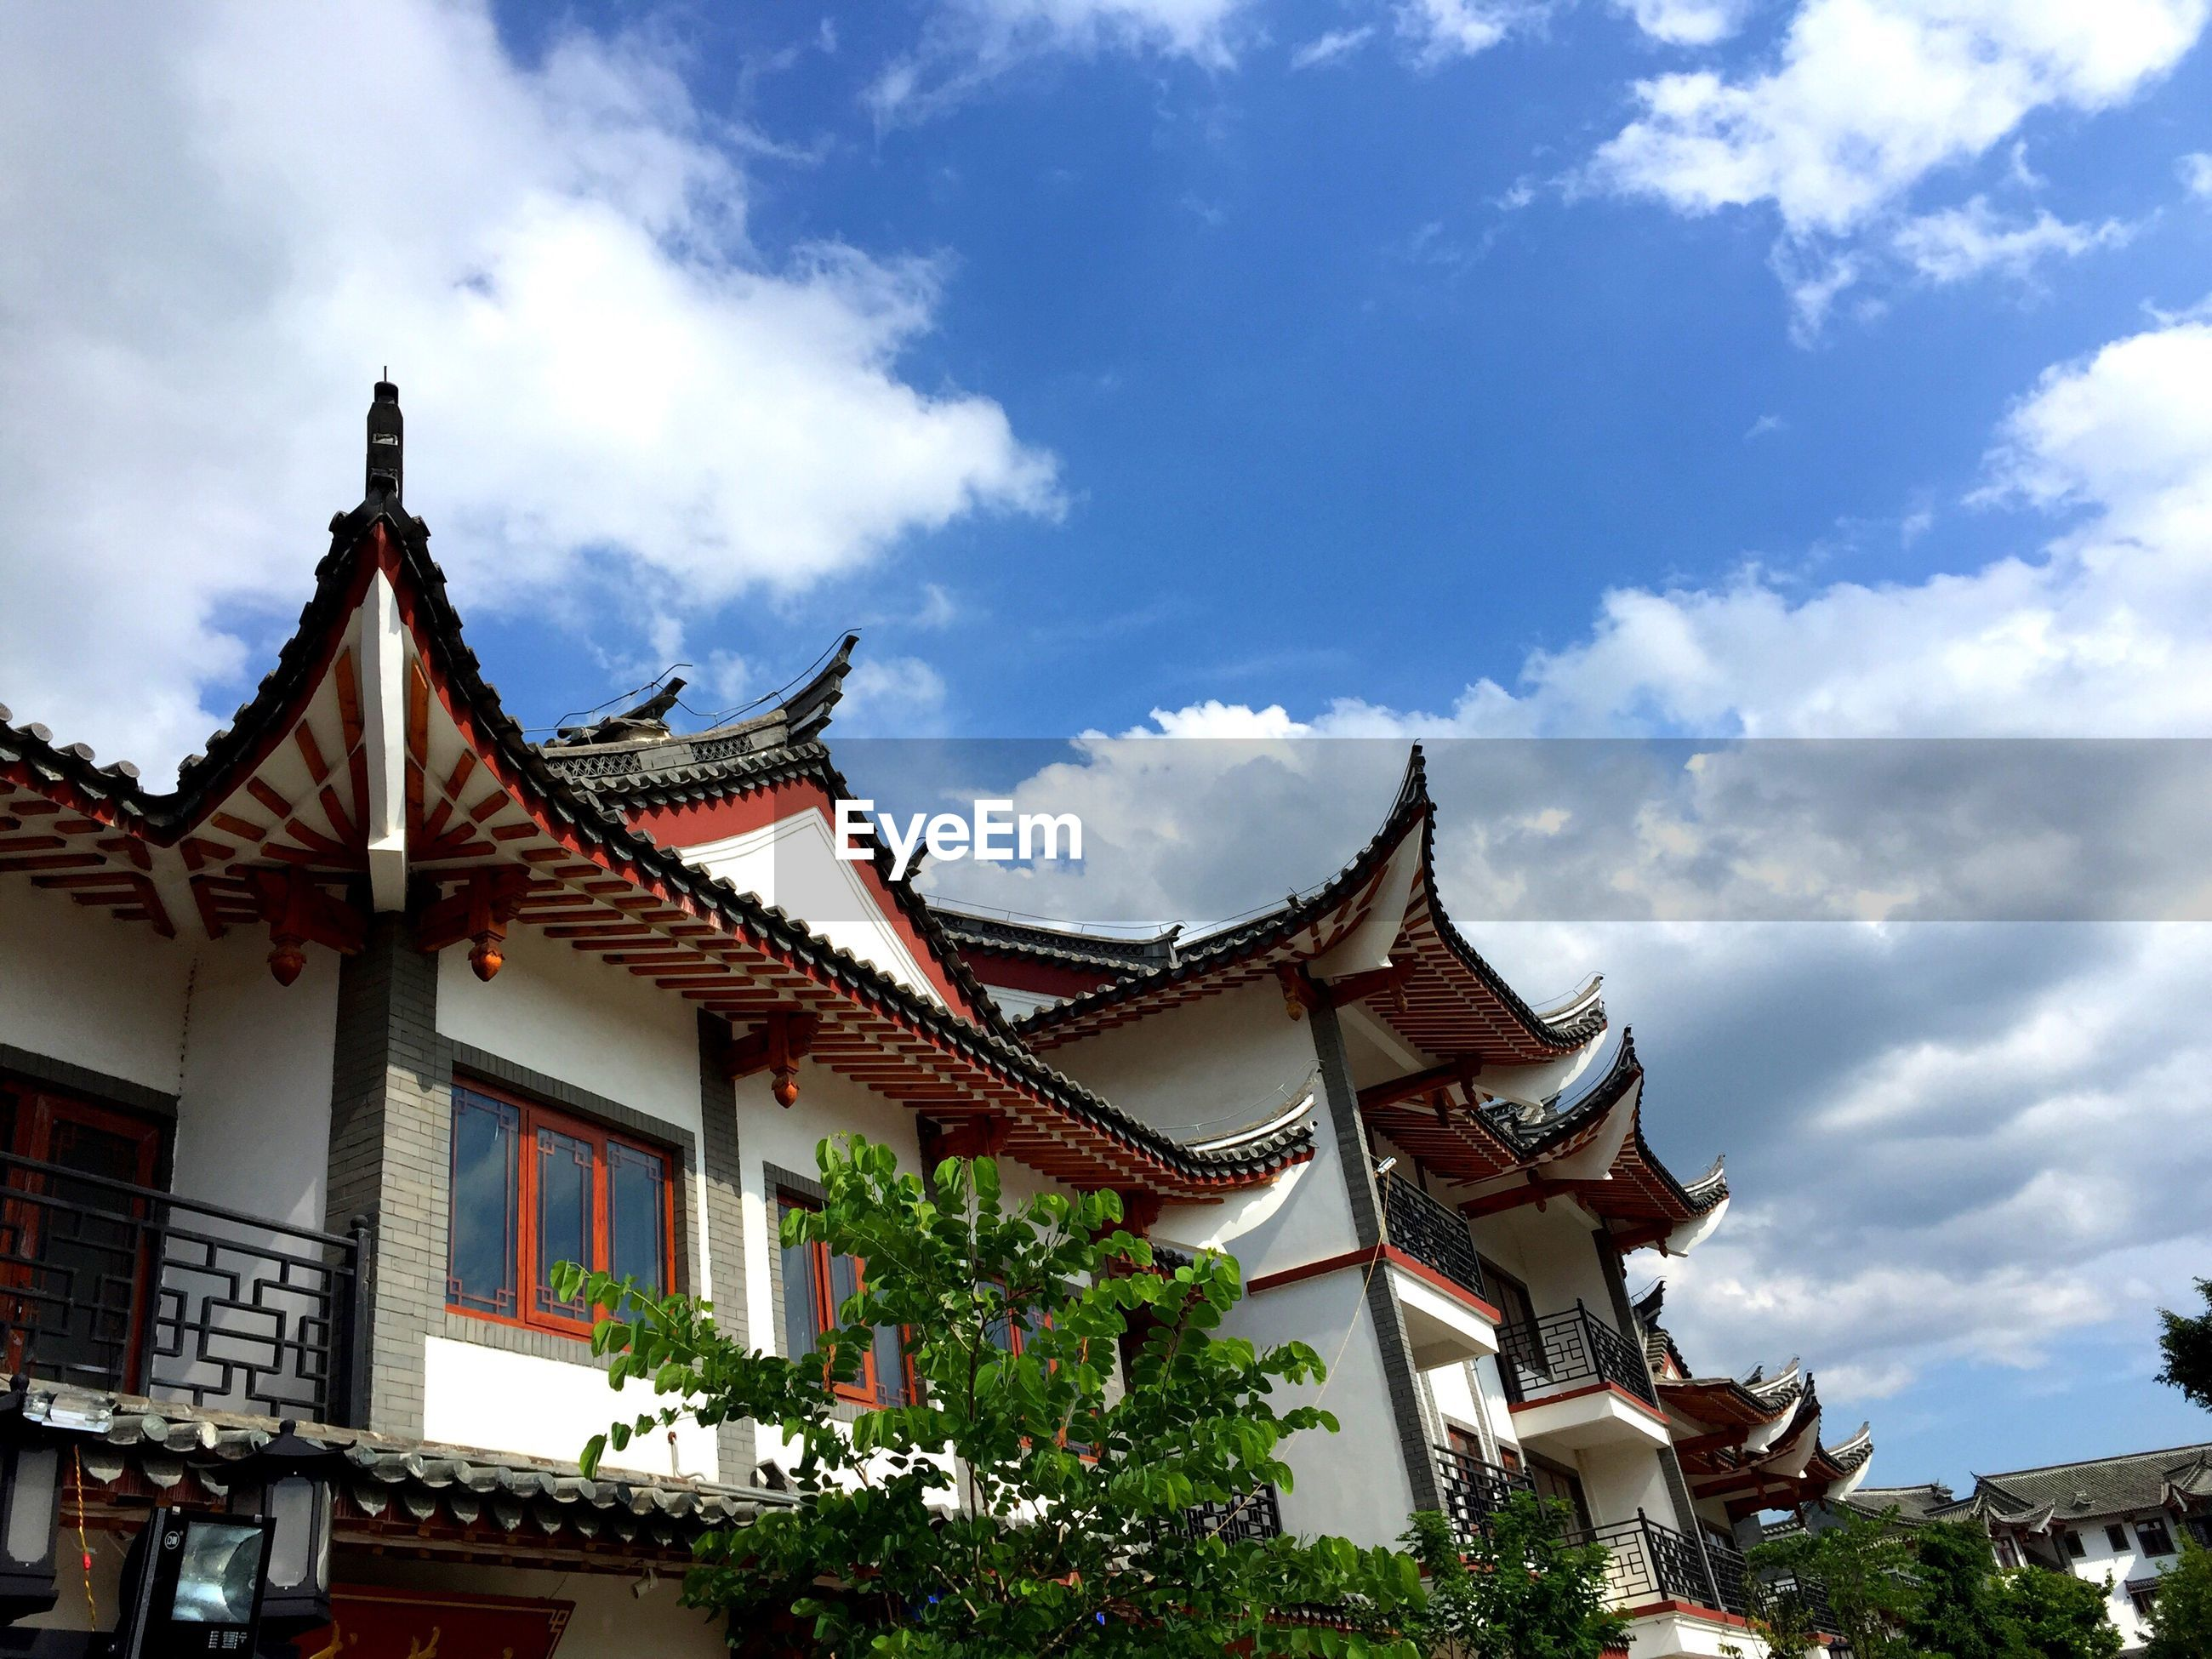 architecture, built structure, sky, low angle view, roof, cloud - sky, cloud, cloudy, day, outdoors, no people, ornate, architectural feature, nature, repetition